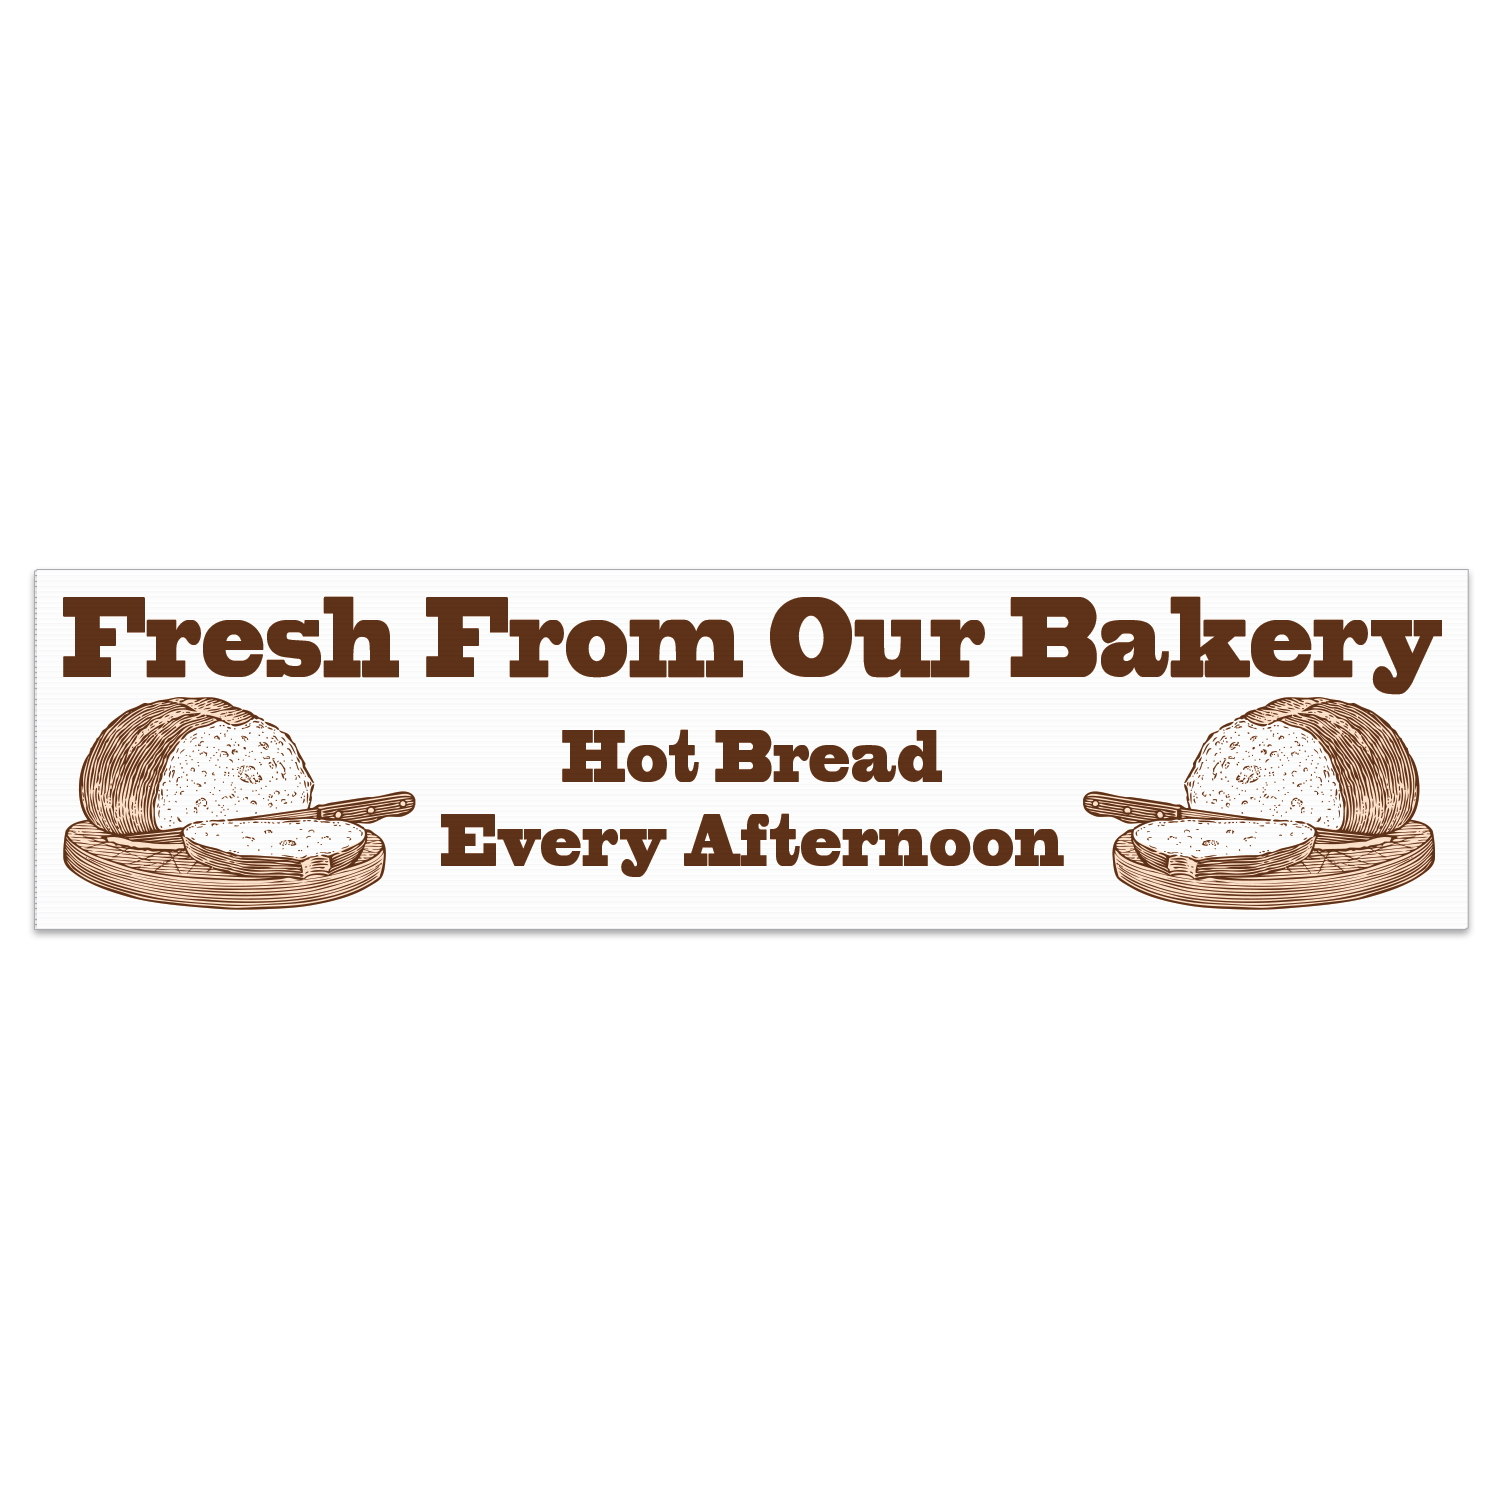 https://www.sswprinting.com/images/products_gallery_images/16331_Fresh-Bread-Bakery_hi-res.png